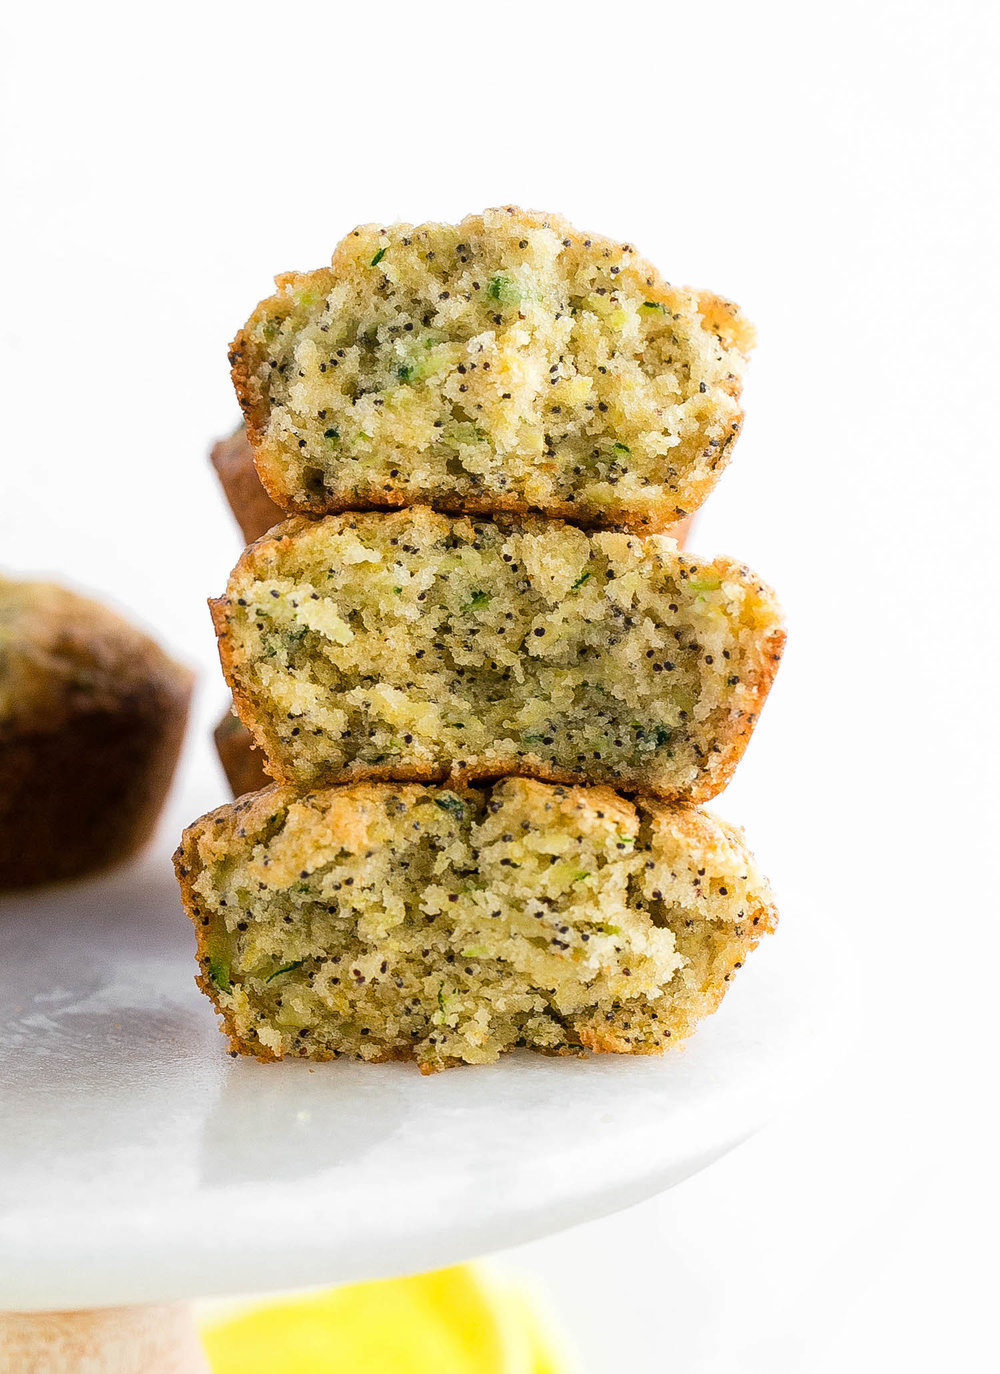 Zucchini Lemon Poppy Seed Muffins: dairy-free, super soft and moist muffins filled with zucchini, zesty lemon flavor, and crunchy poppy seeds. | TrufflesandTrends.com